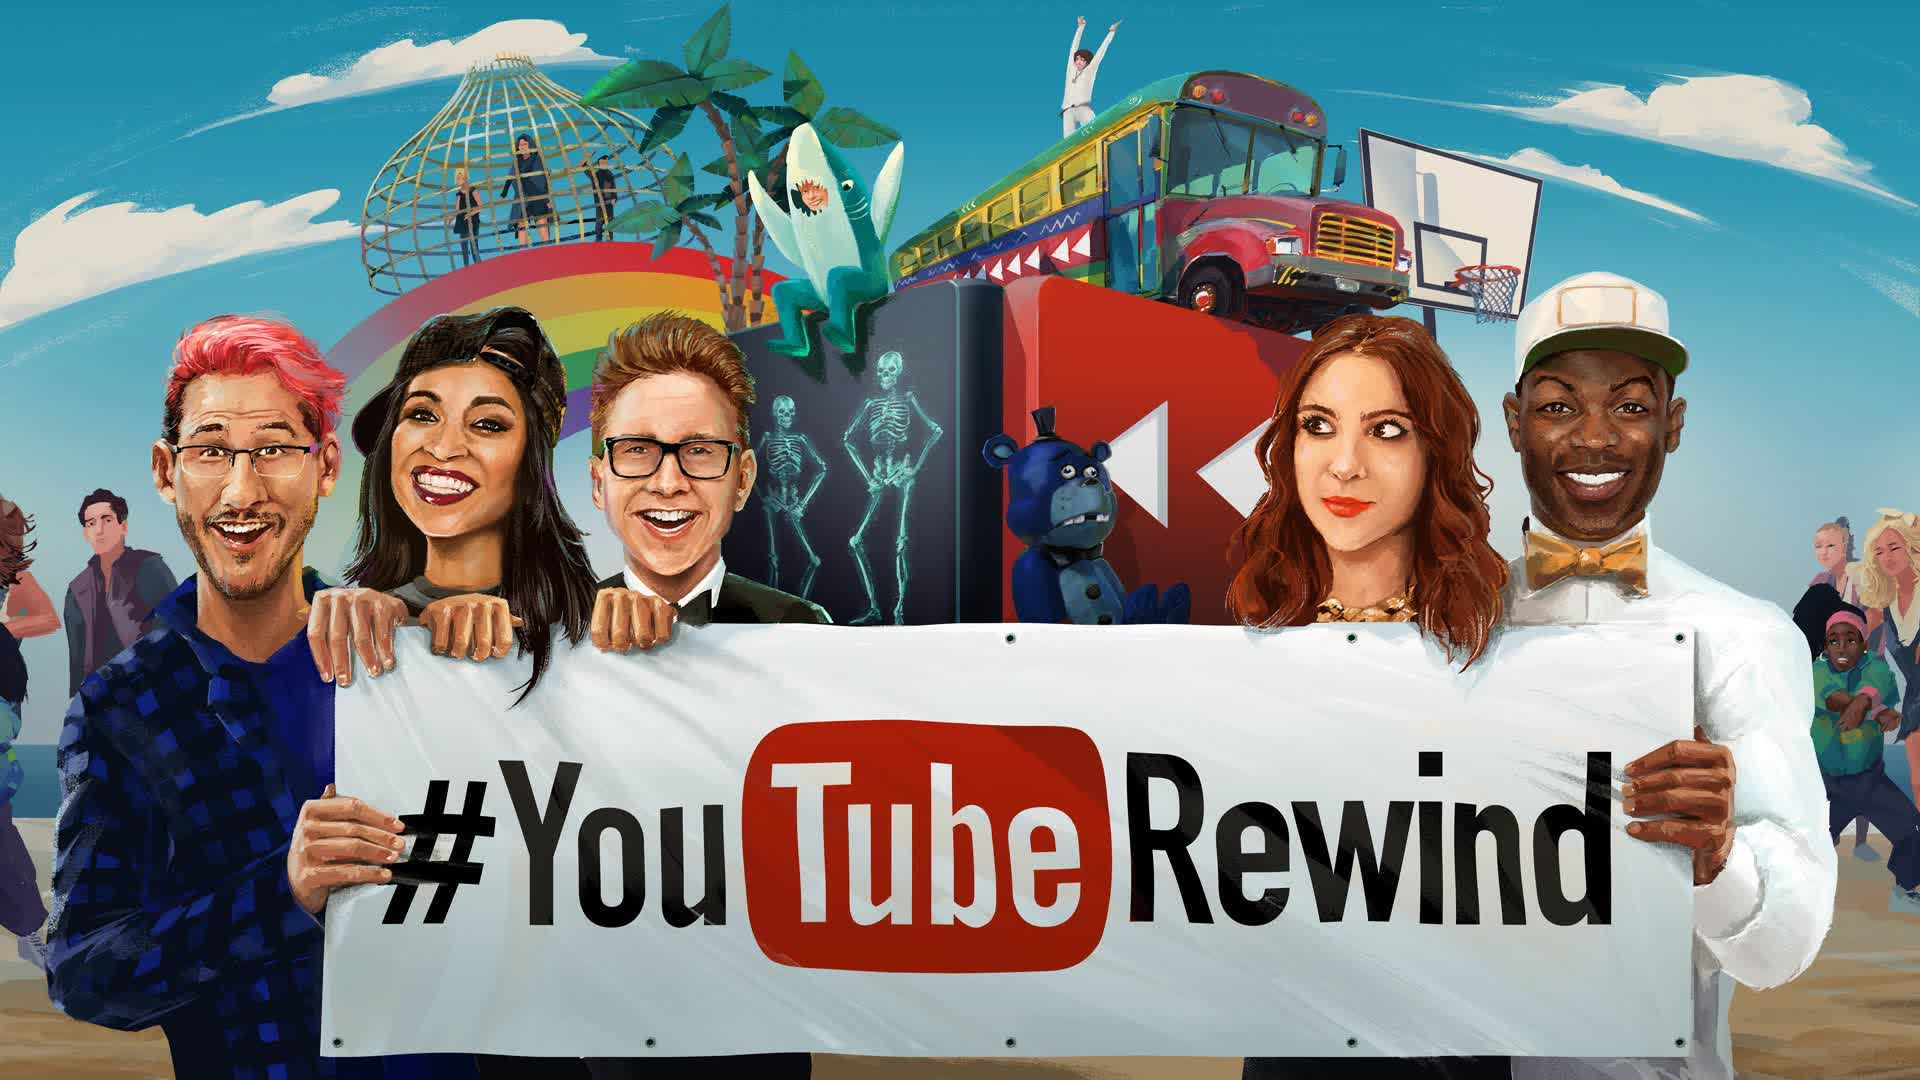 For the first time in a decade, there will be no YouTube Rewind this year